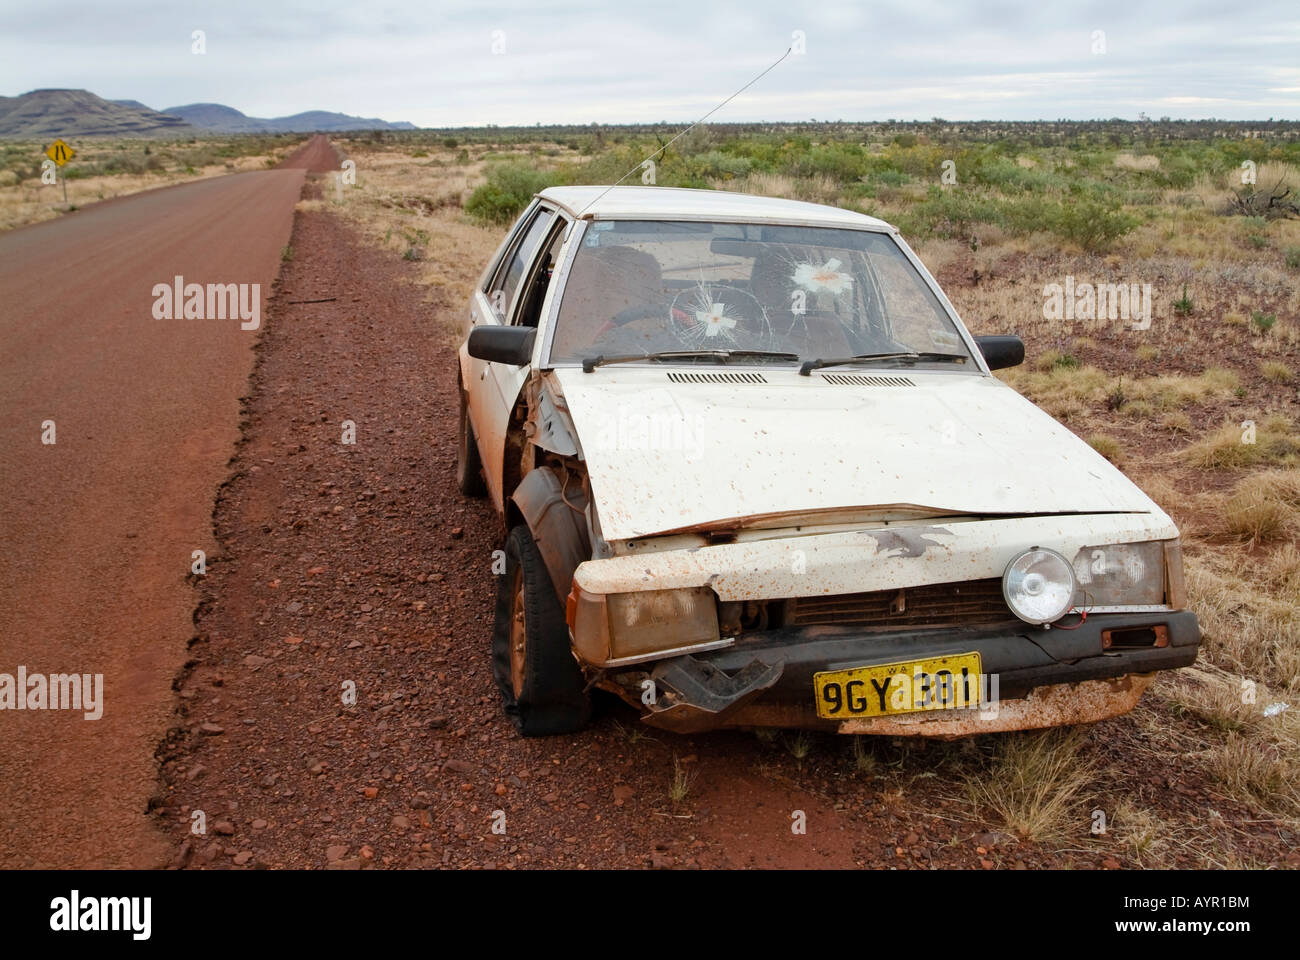 Car wrecked after a collision with a kangaroo parked on the shoulder of a highway in Western Australia, Australia - Stock Image